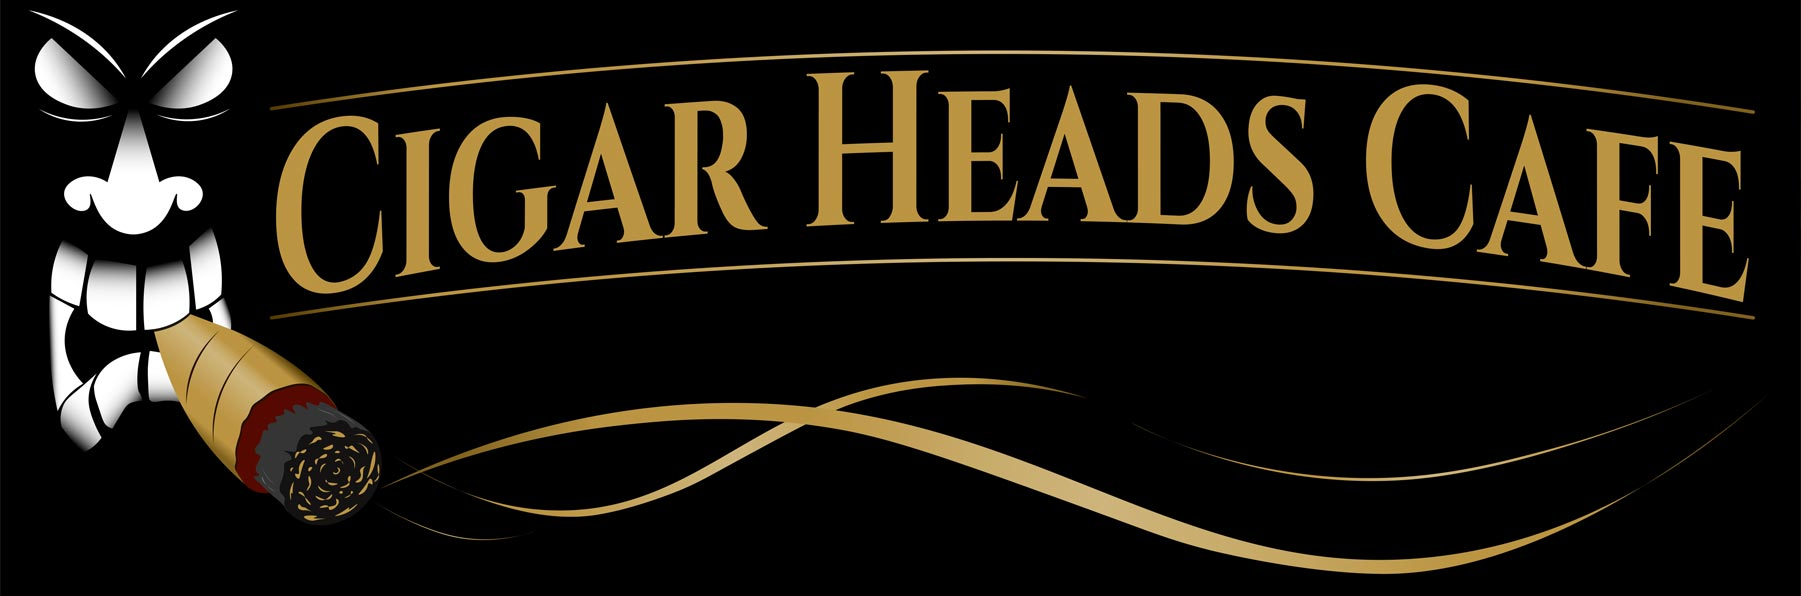 Cigar Heads Cafe Logo